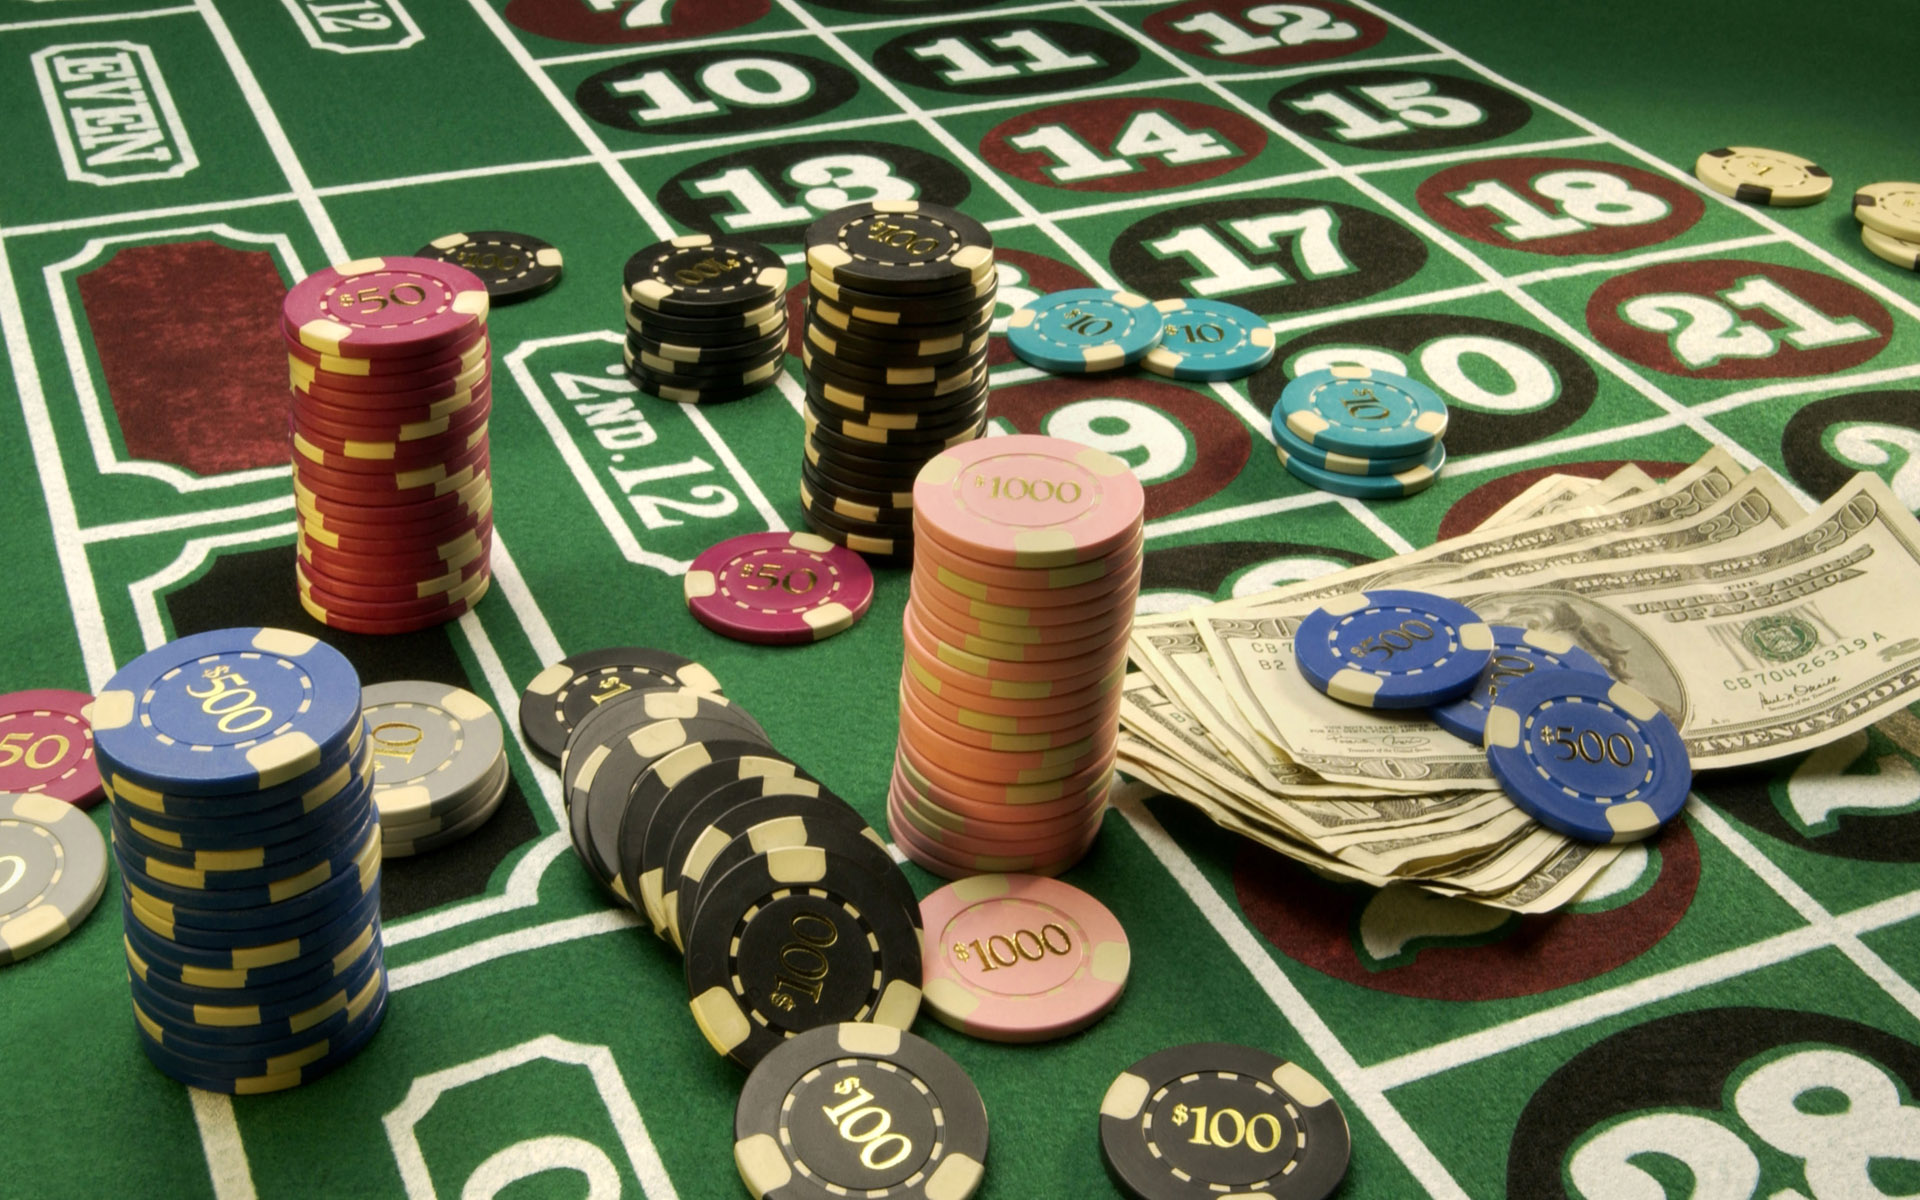 DOES USING ONLINE CASINO WITH PREDICTIONS EARN MONEY?